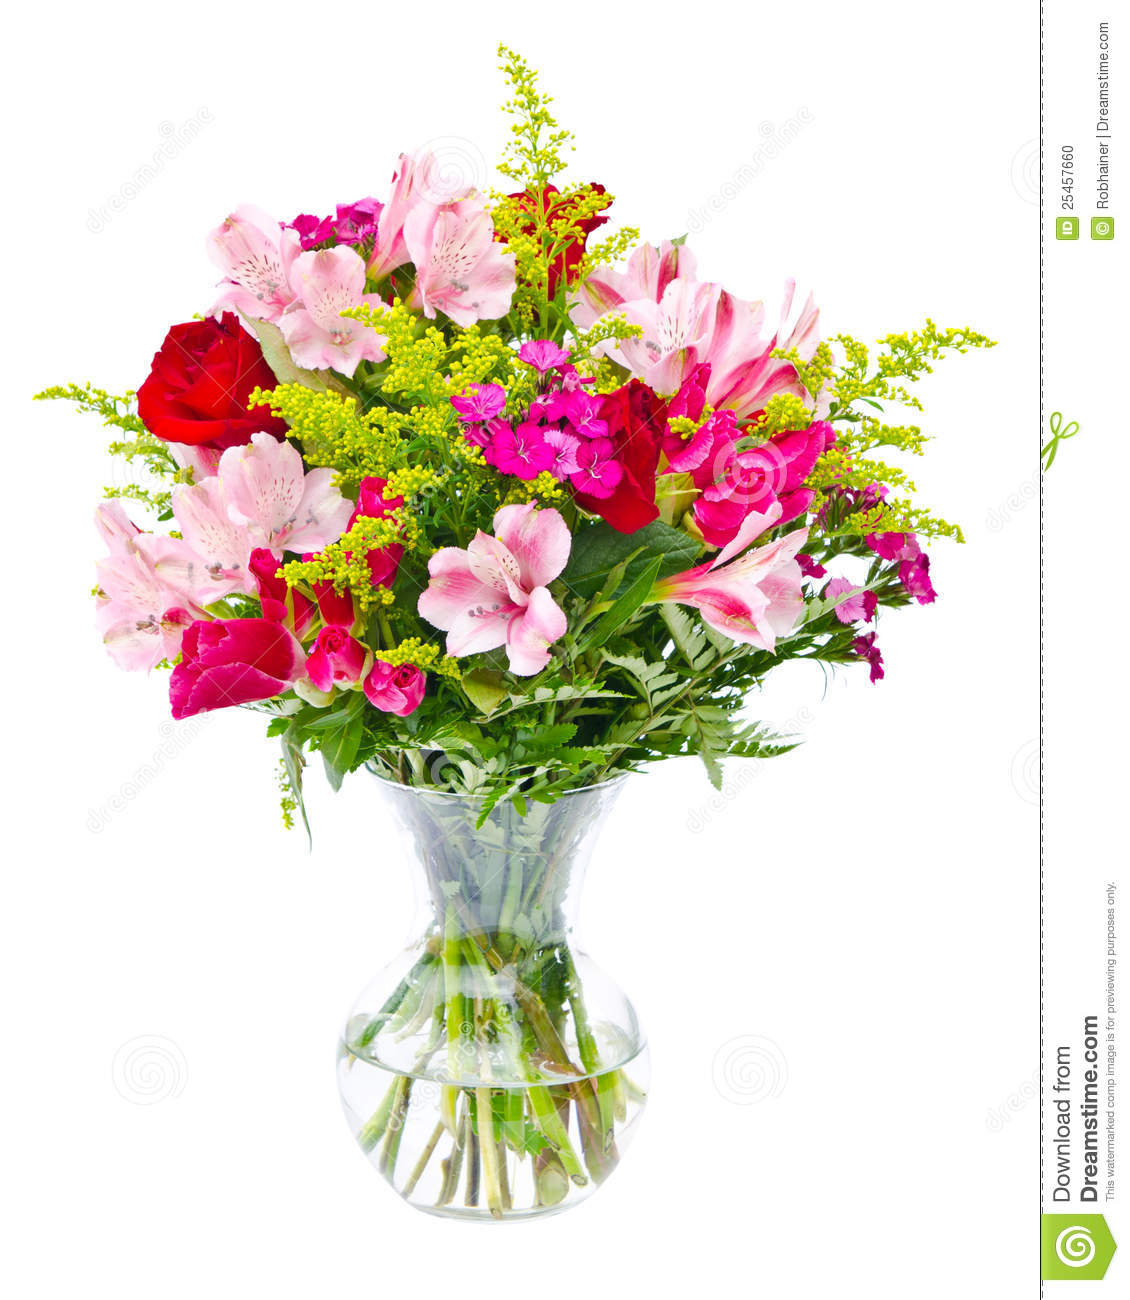 Colorful Flower Bouquet Arrangement Centerpiece Stock Photo - Image ...